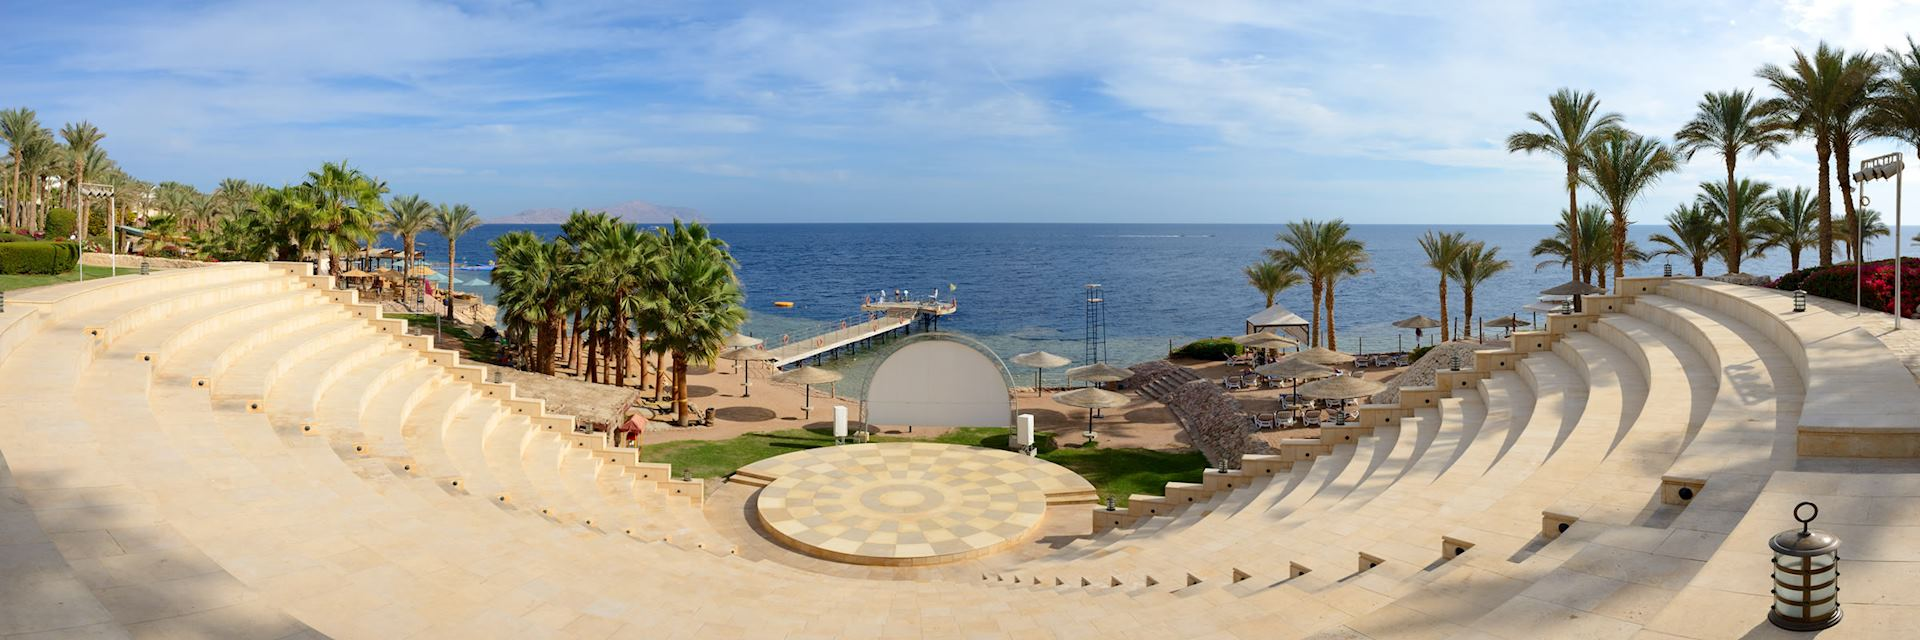 Luxury Red Sea resort